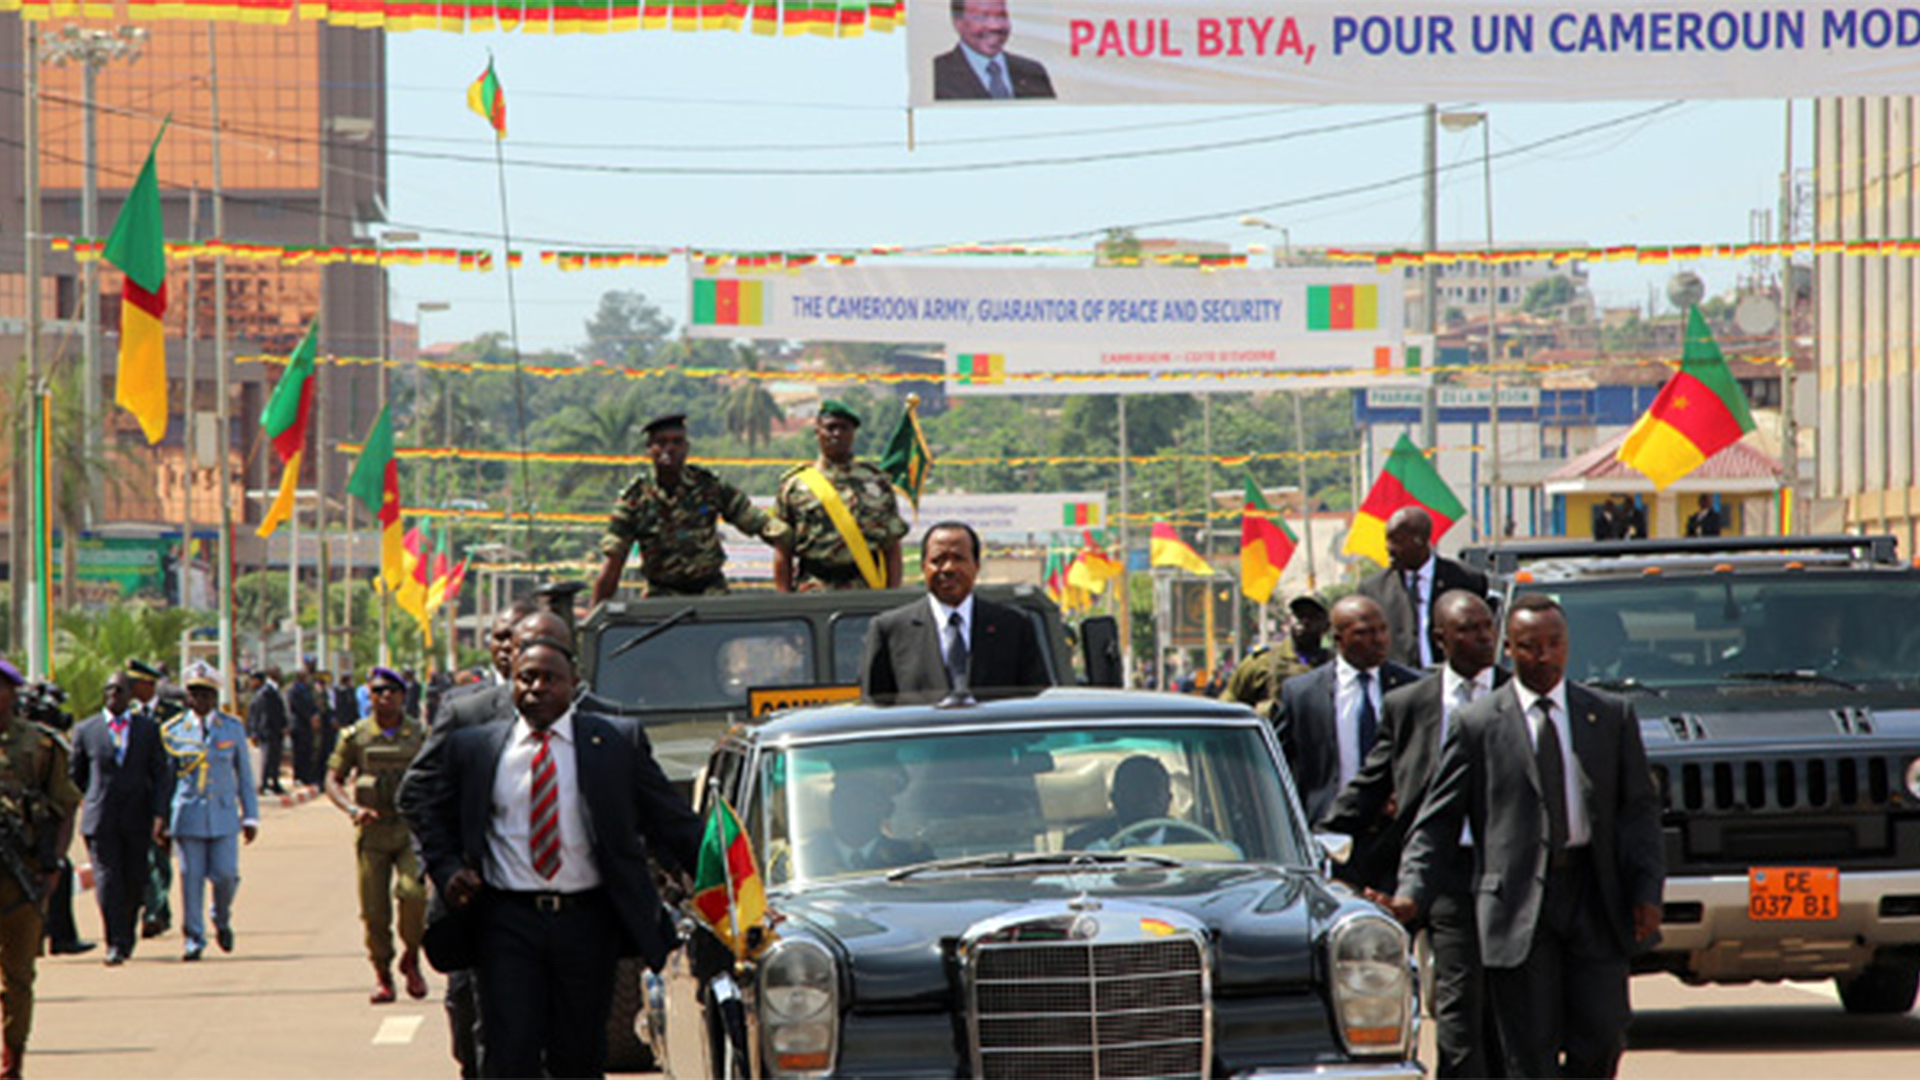 Disunity Day: Why Cameroon's National Unity Day Is A Source Of Bitter Divisions Among Its People